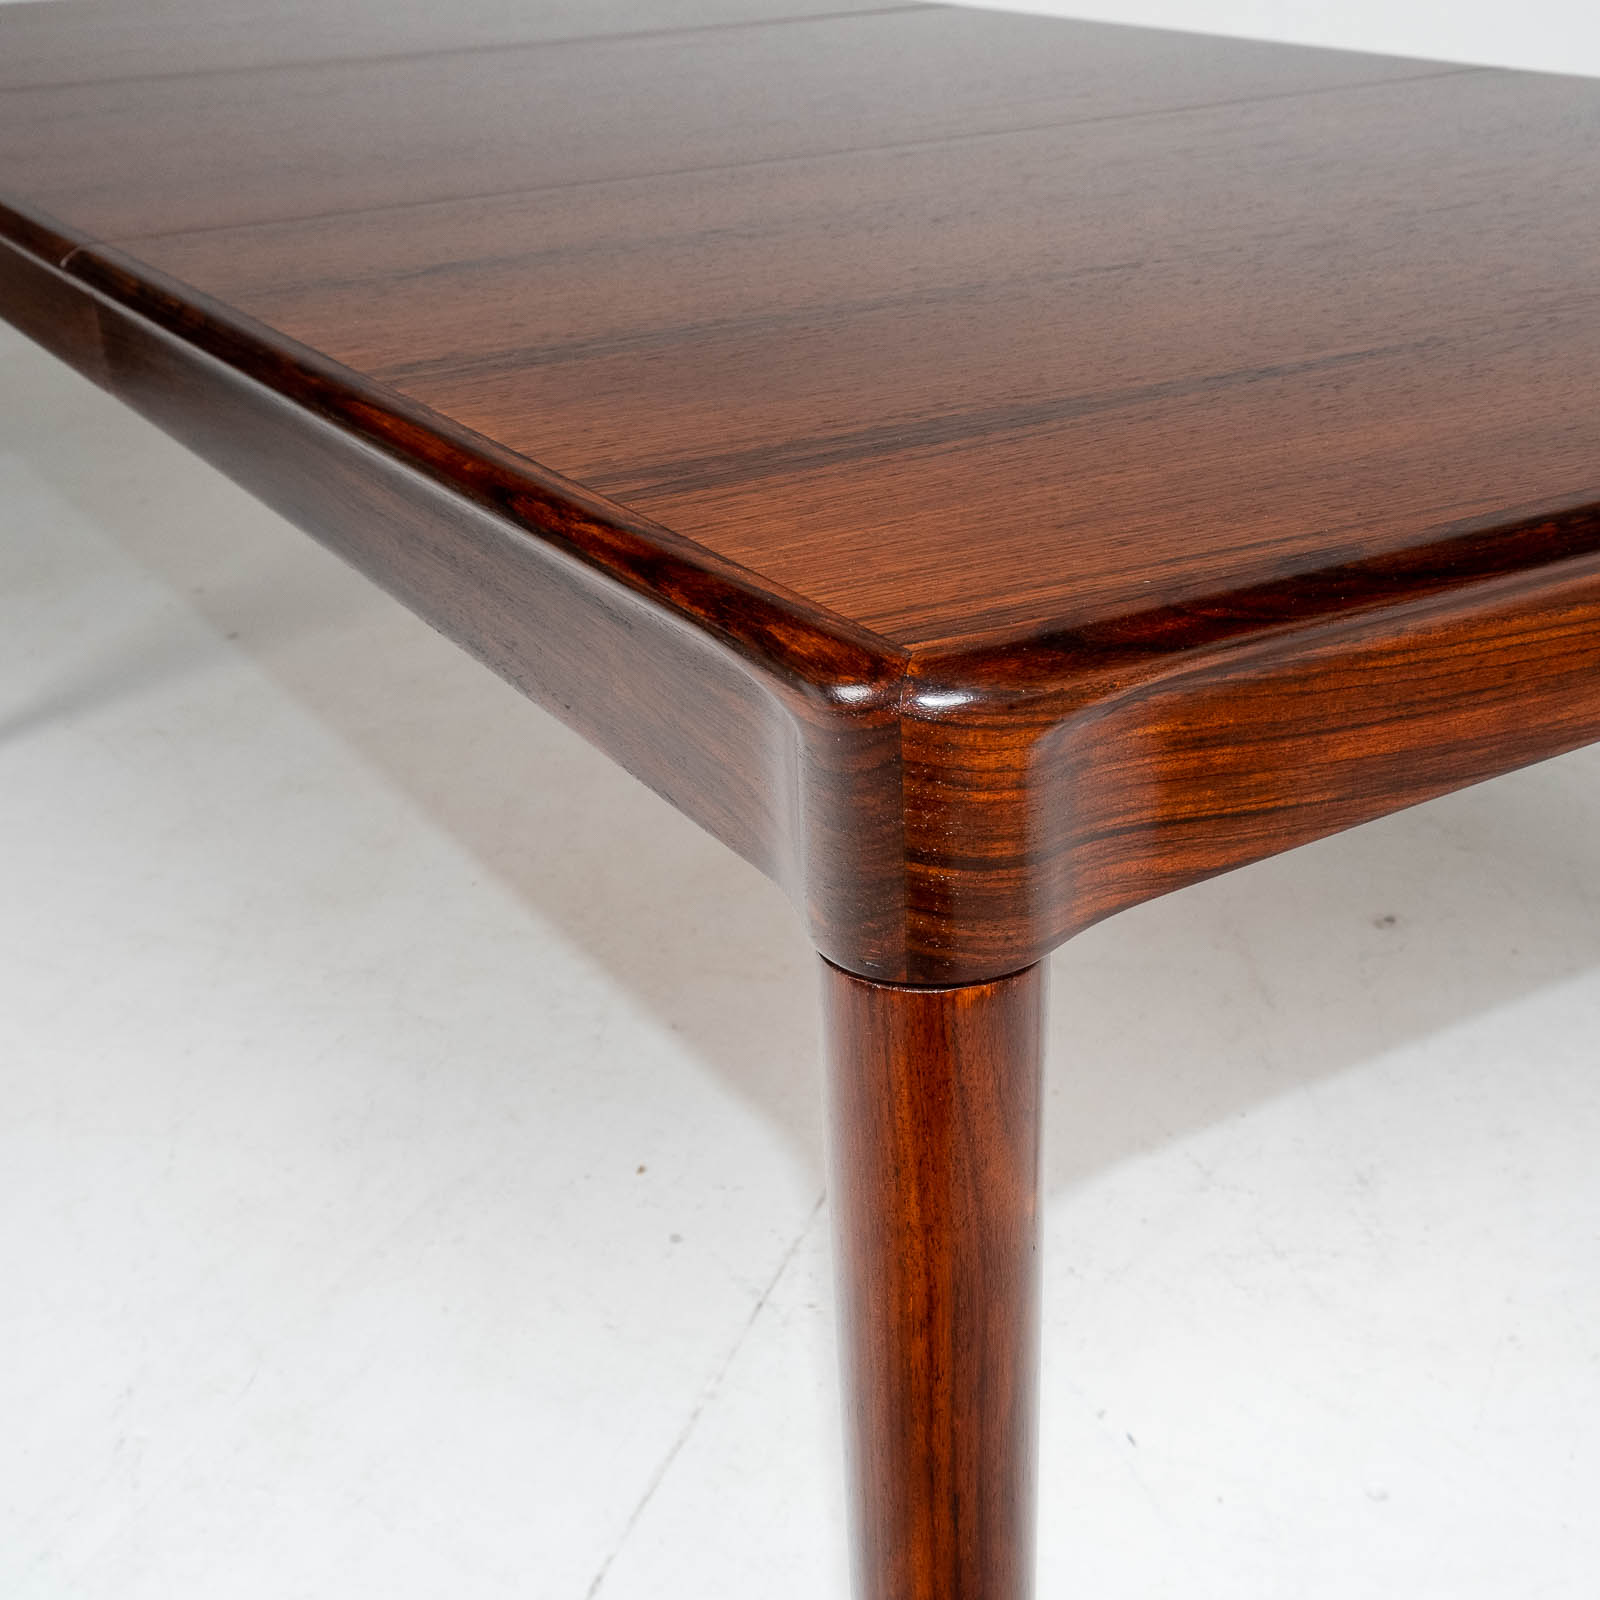 Extendable Dining Table By Hw Klein For Bramin In Rosewood, 1960s, Denmark2